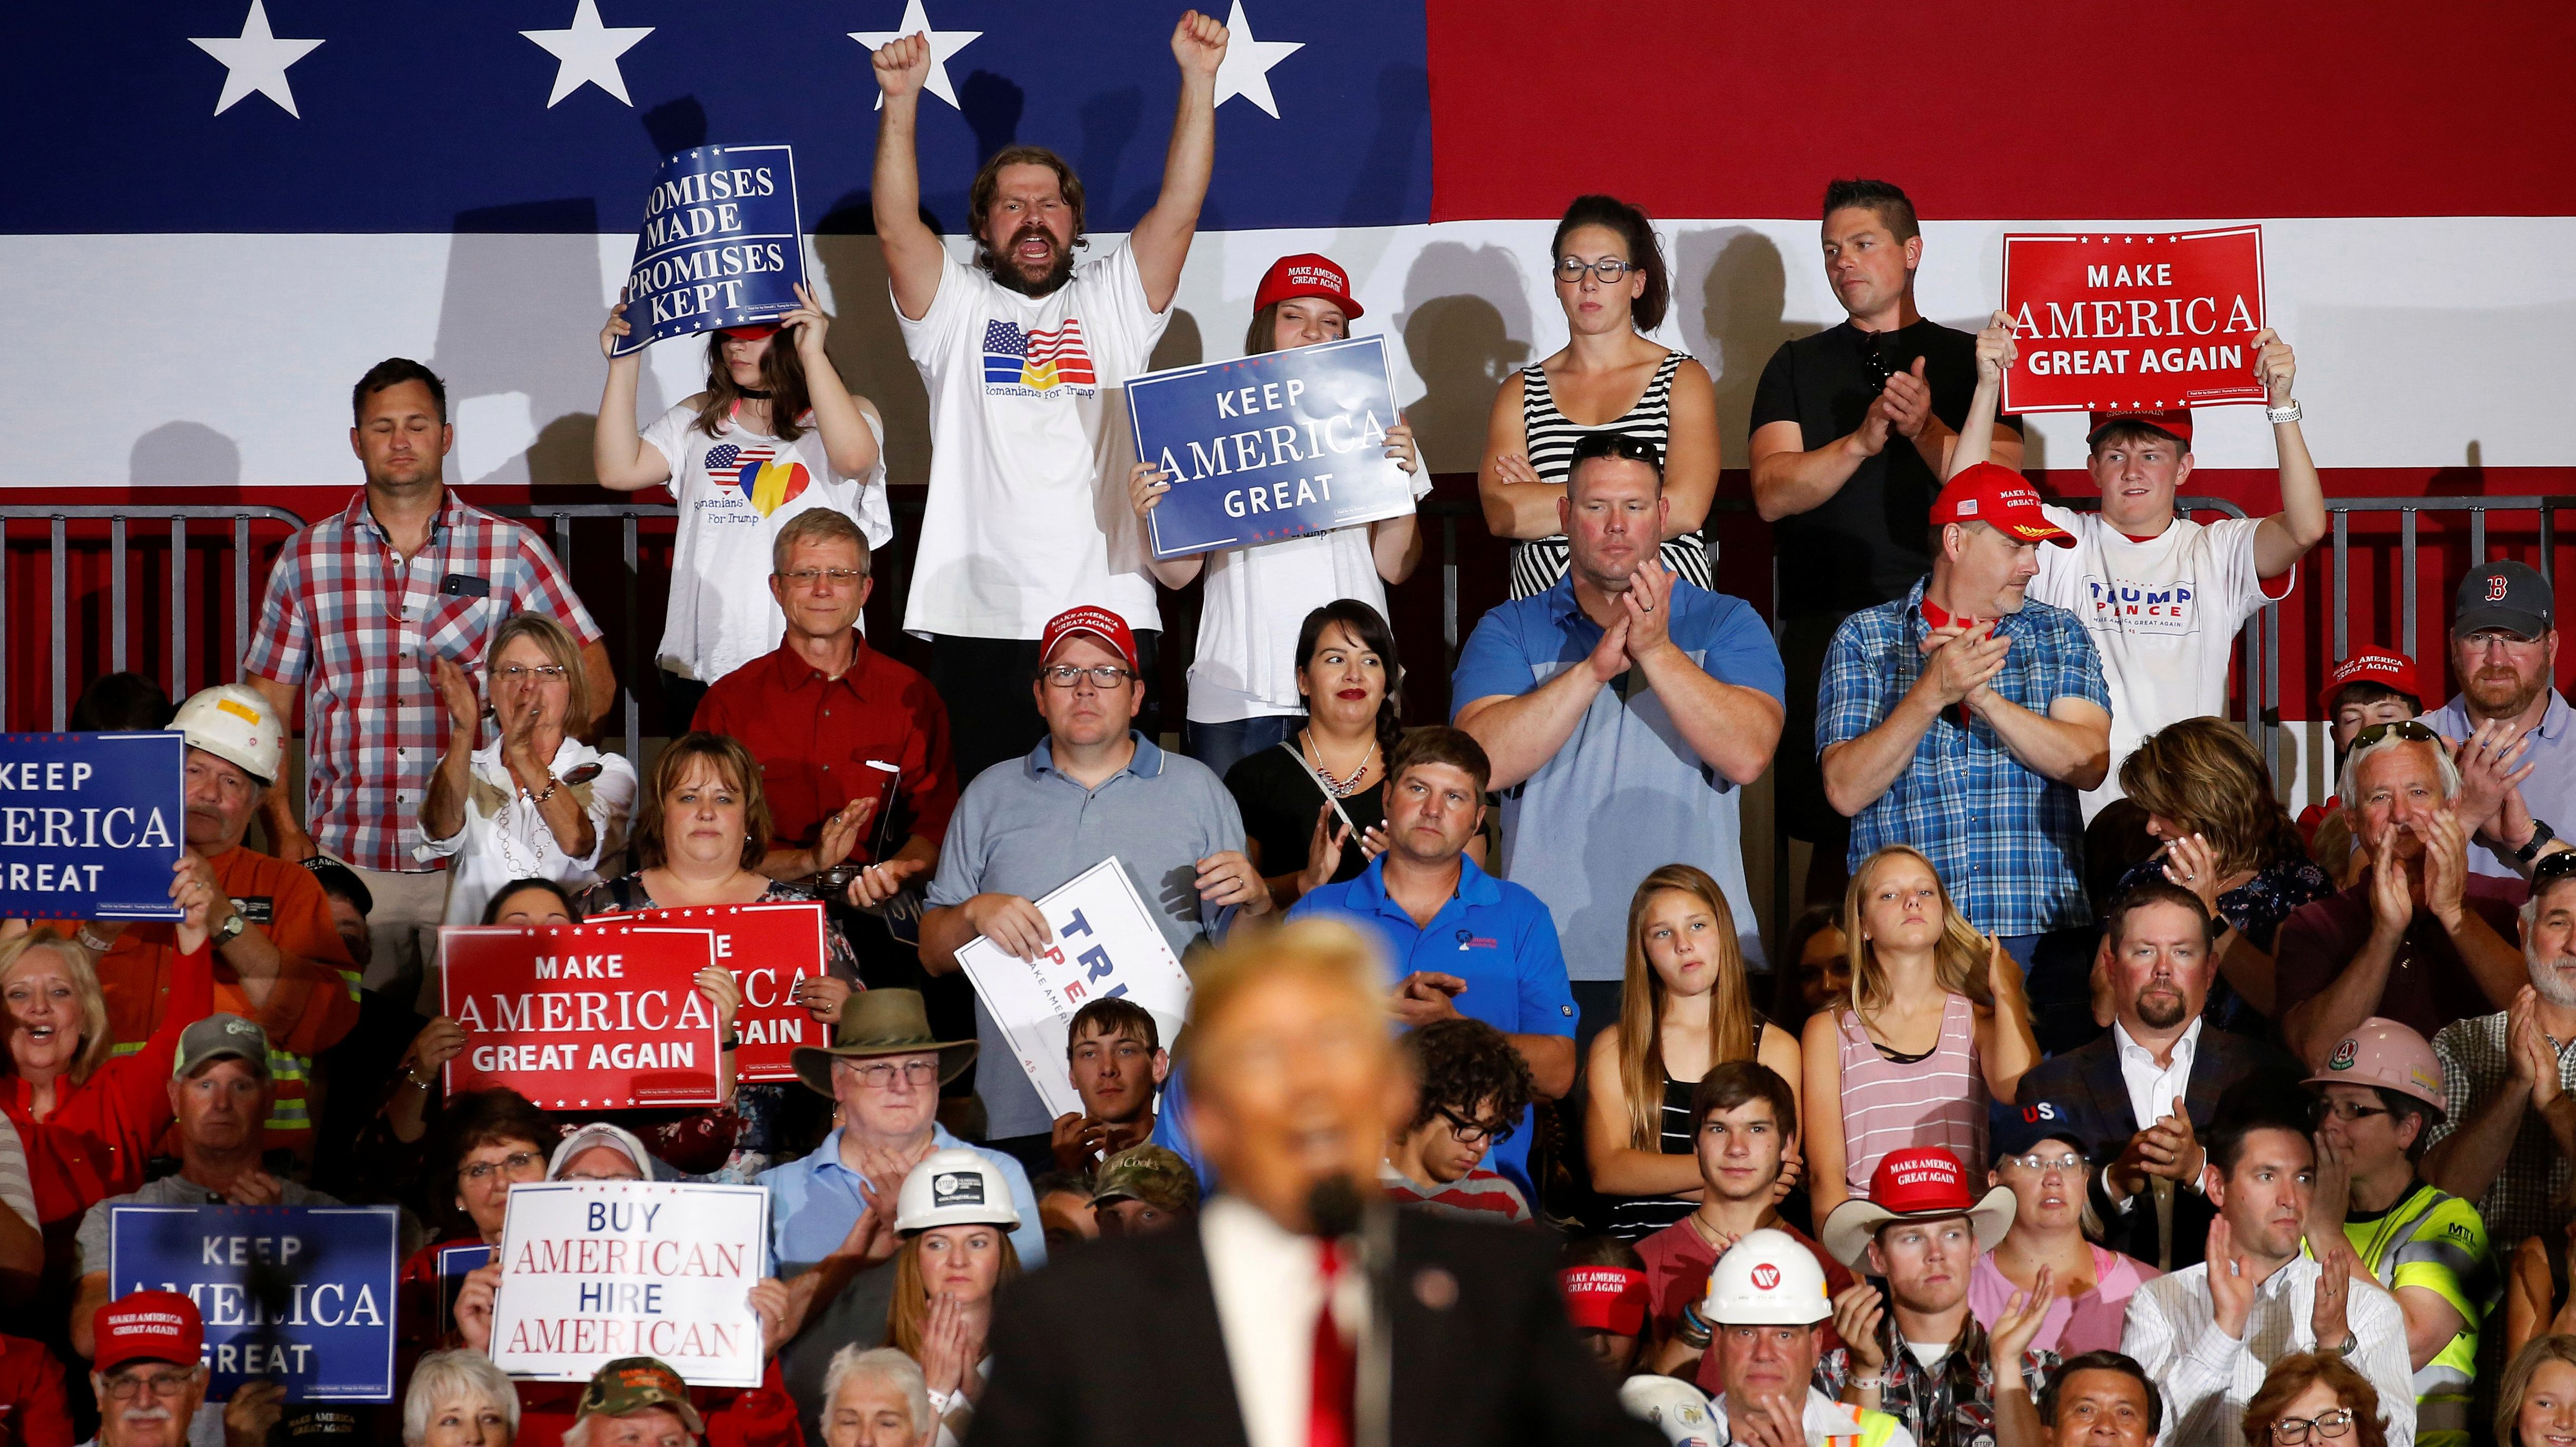 Supporters cheer as U.S. President Donald Trump speaks during a Make America Great Again rally